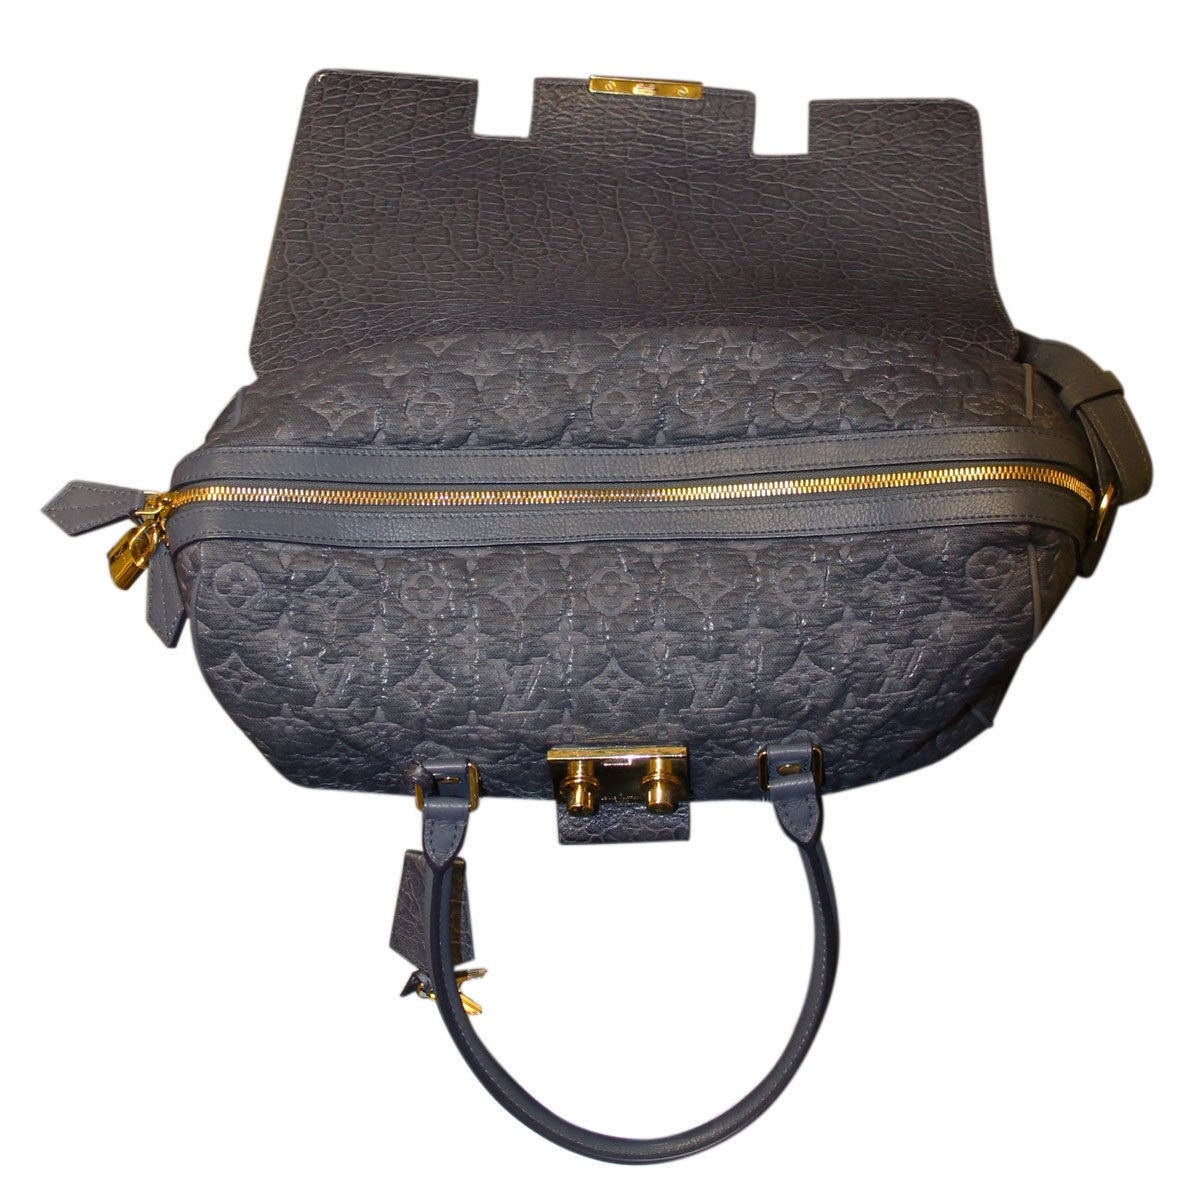 Louis Vuitton Volupte Psyche Leather Gris Bag Purse In Good Condition For Sale In Boca Raton, FL